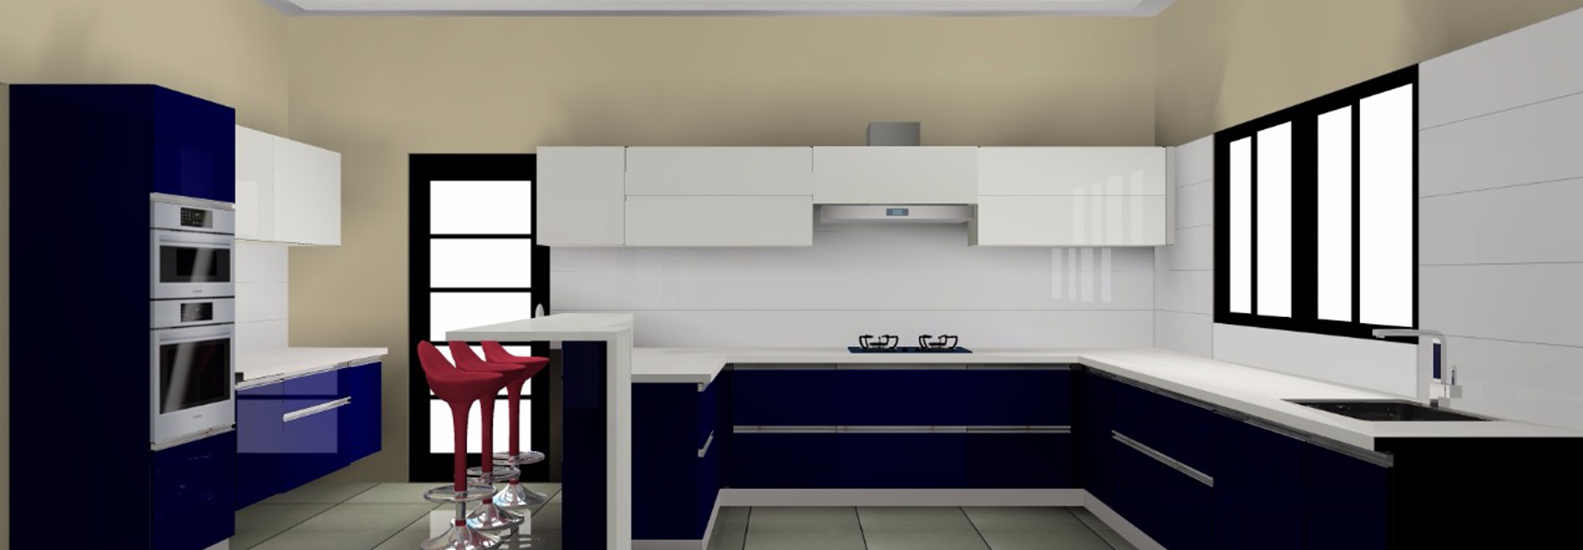 Vella Cuisine The Kitchen Experts Satellite Vella Cuisine Modular Kitchen  In Ahmedabad Satellite